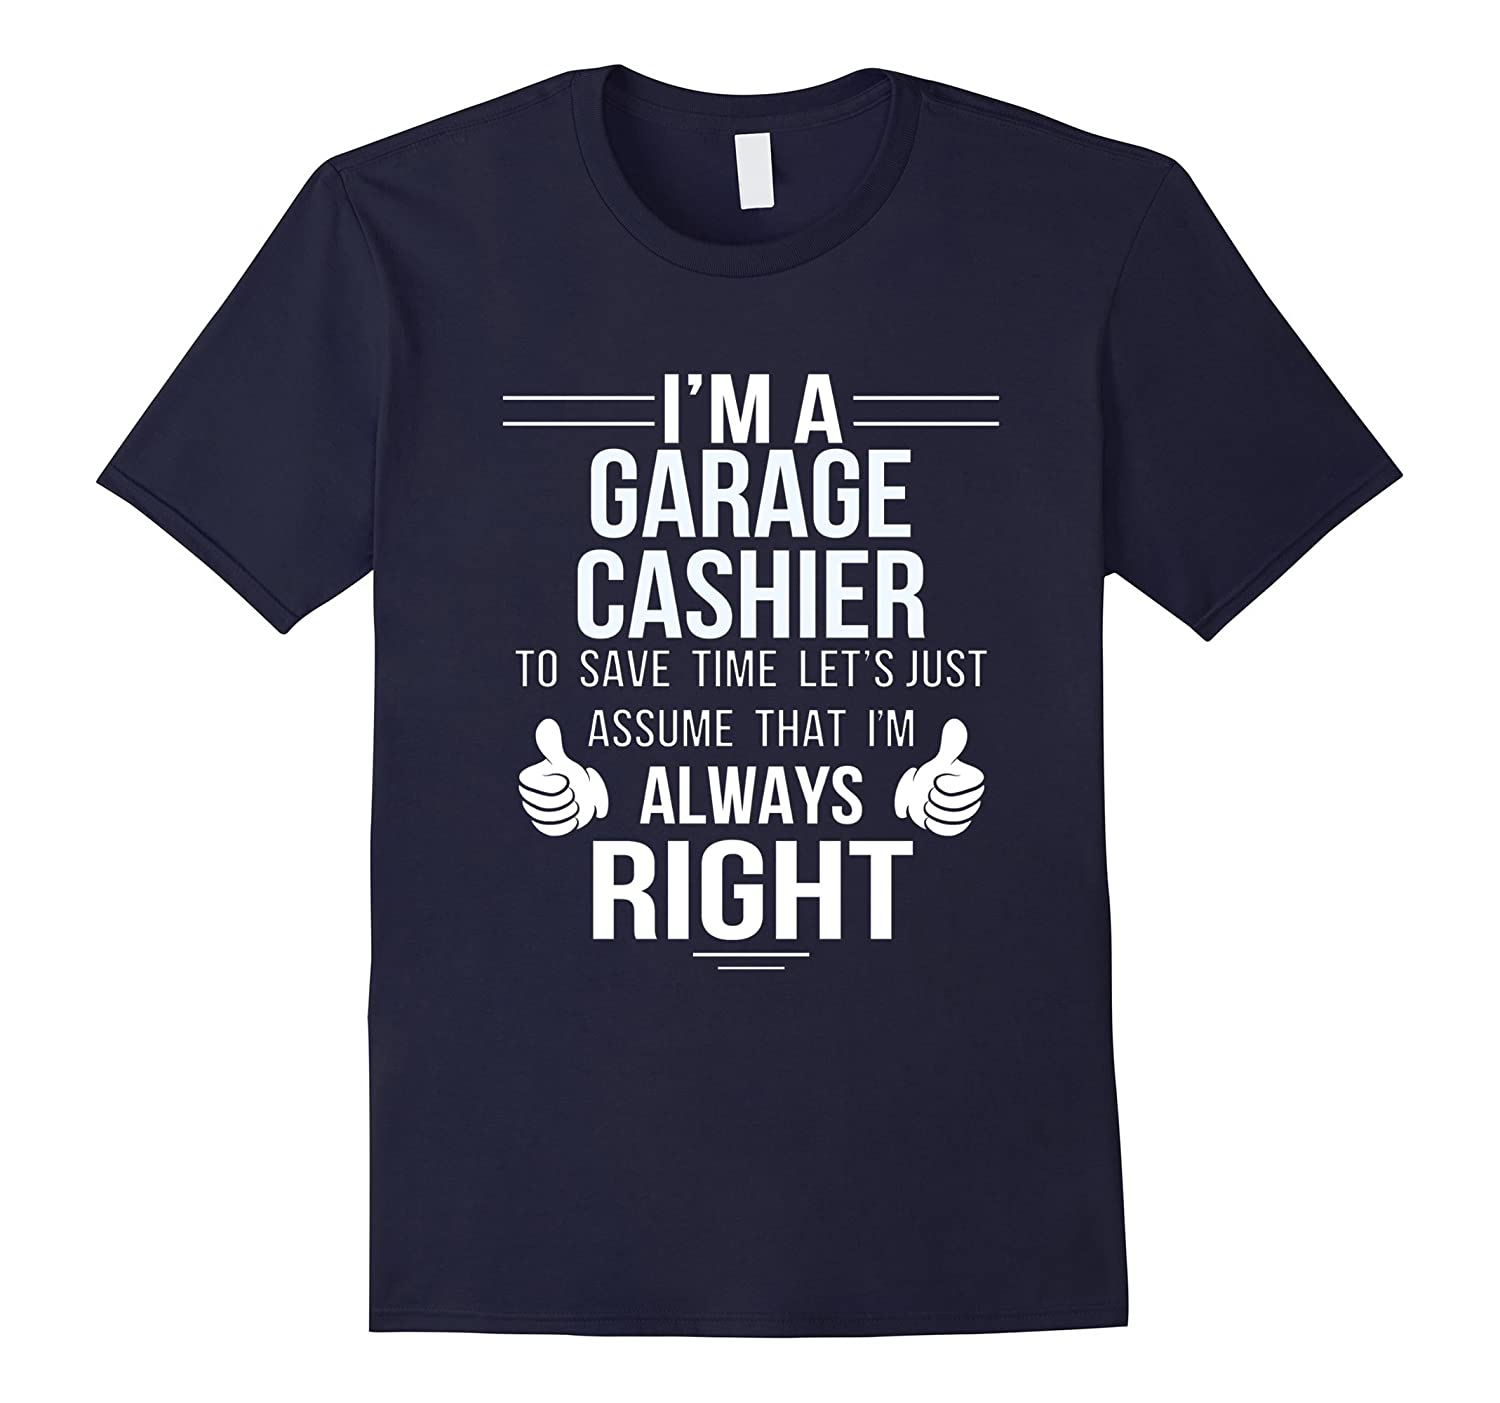 Assume Garage Cashier always right to save time-TD